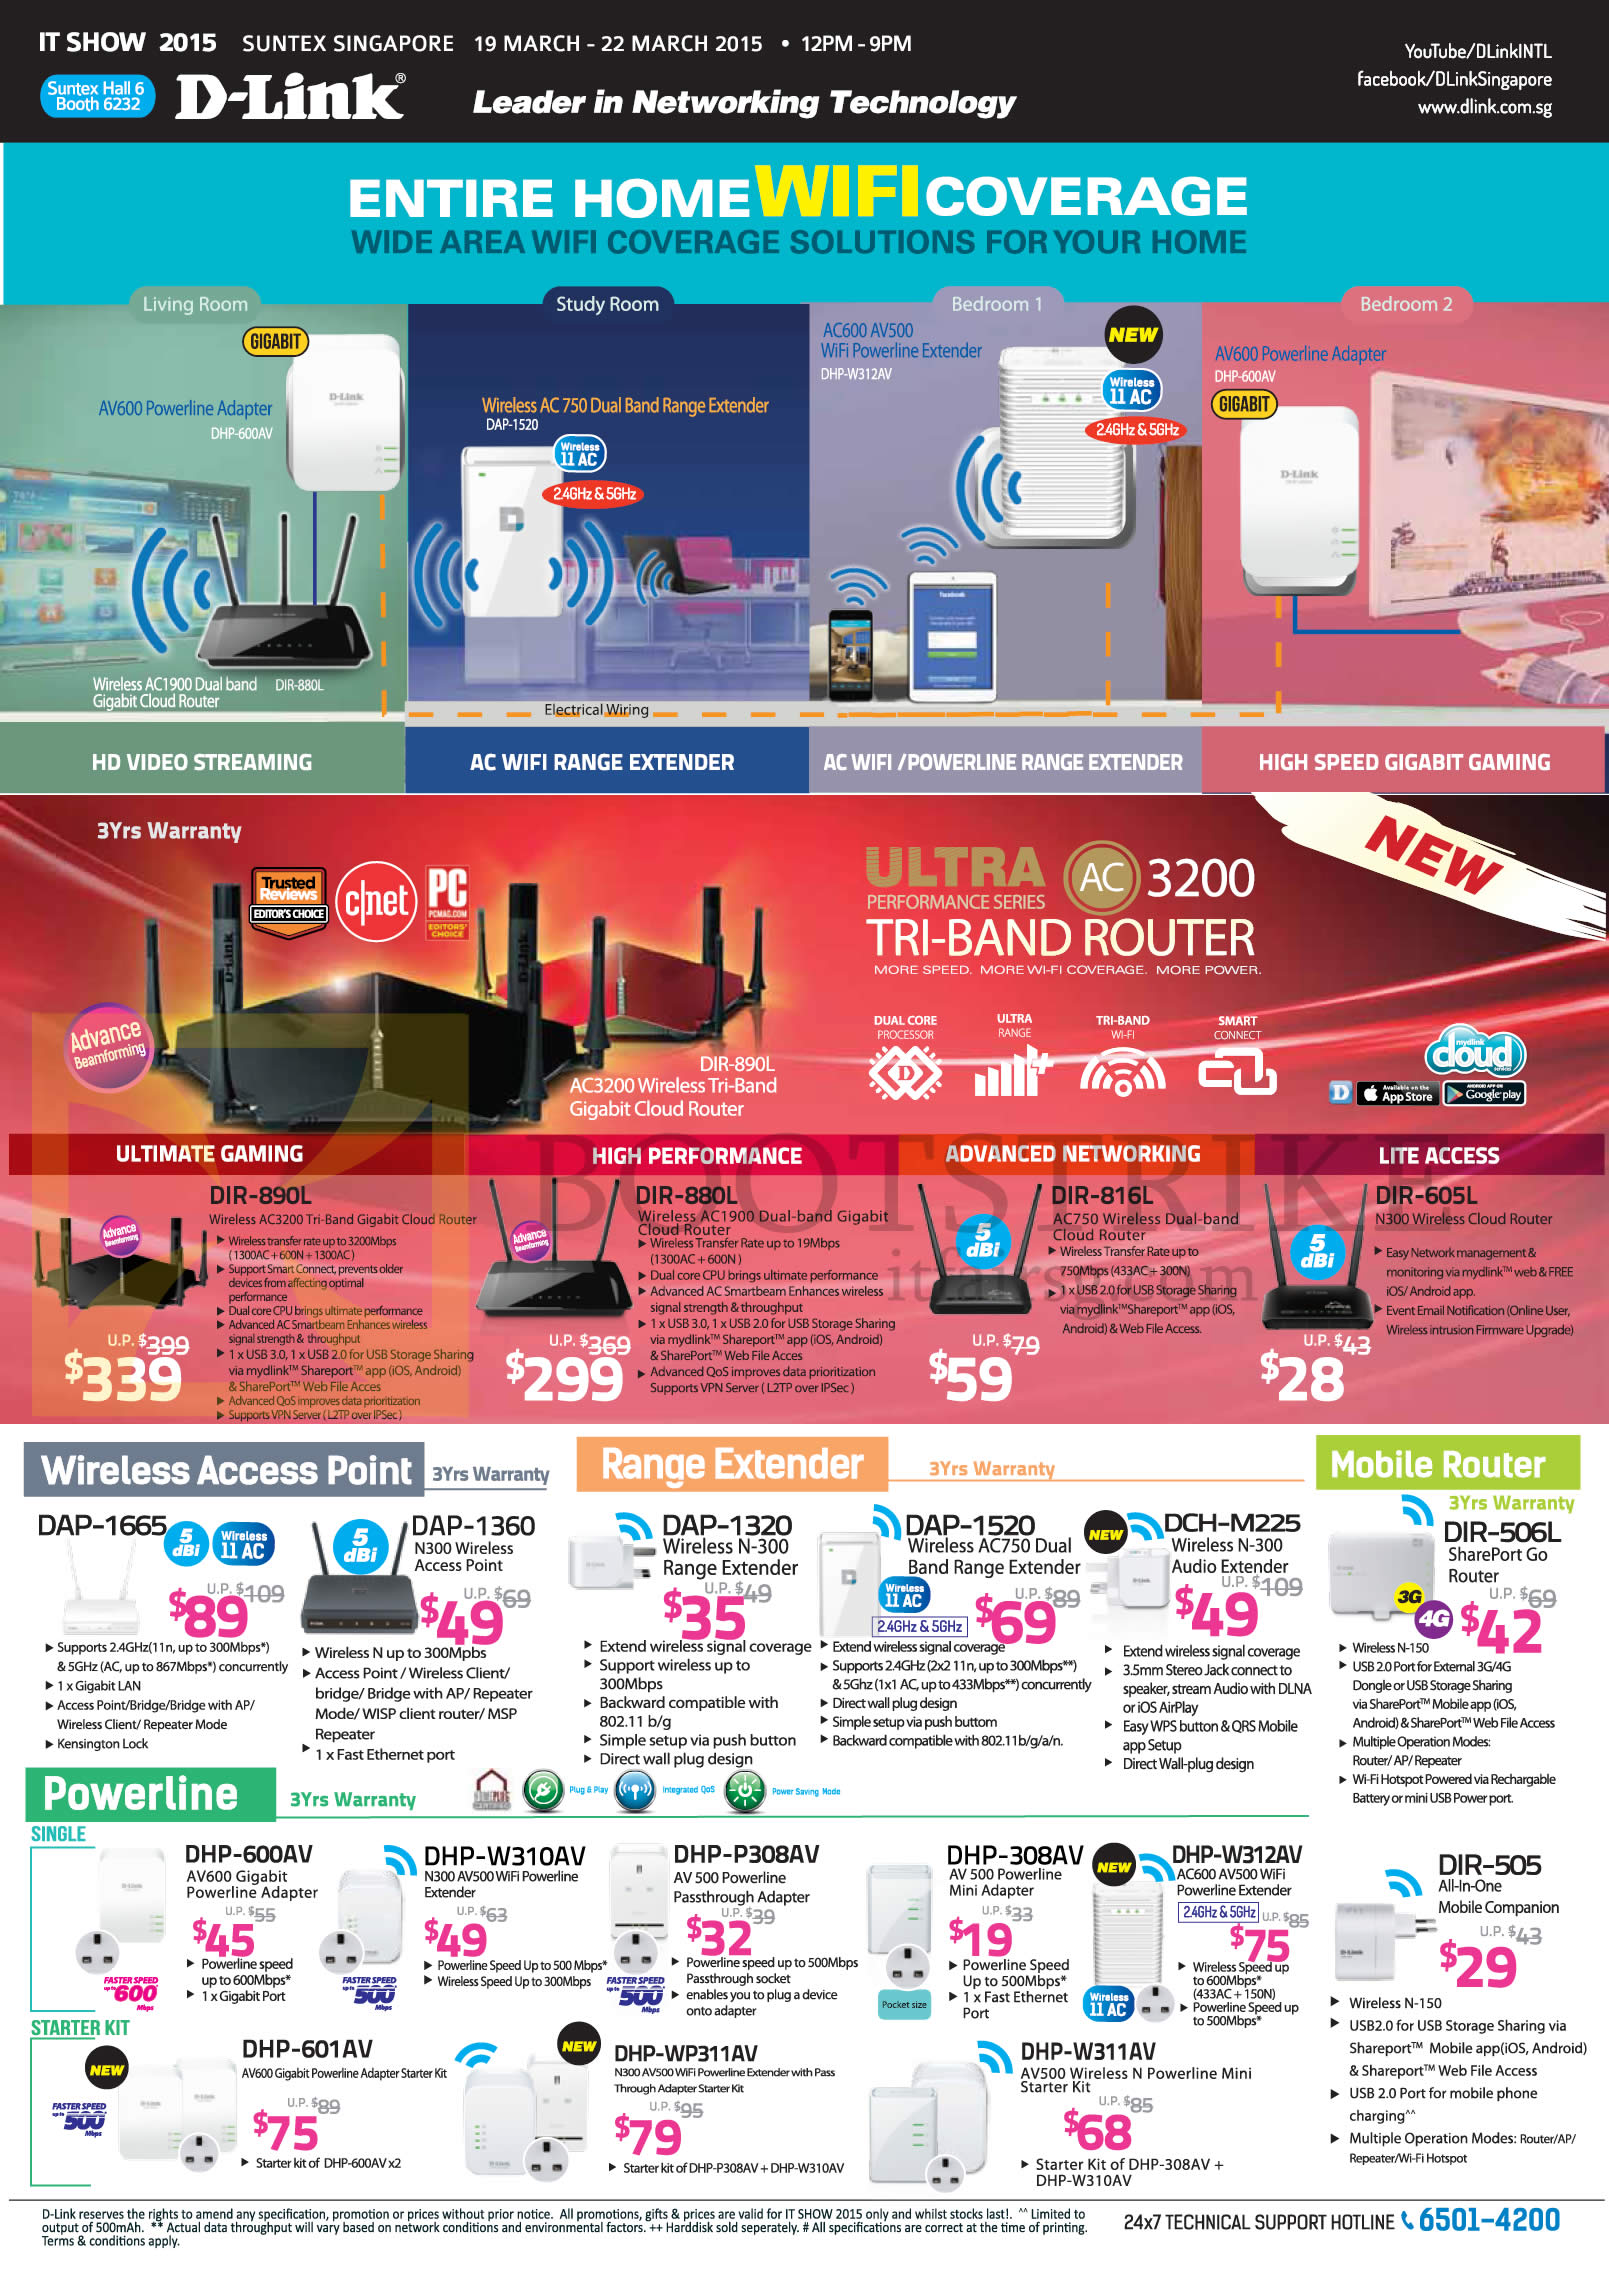 IT SHOW 2015 price list image brochure of D-Link Networking Wireless Range Extender, Router, Powerline, DAP-1665, 1360, 1320, 1520, DCH-M225, DHP-600AV, W310AV, P308AV, 308AV, W312AV, W311AV, 601AV, WP311AV, DIR-505